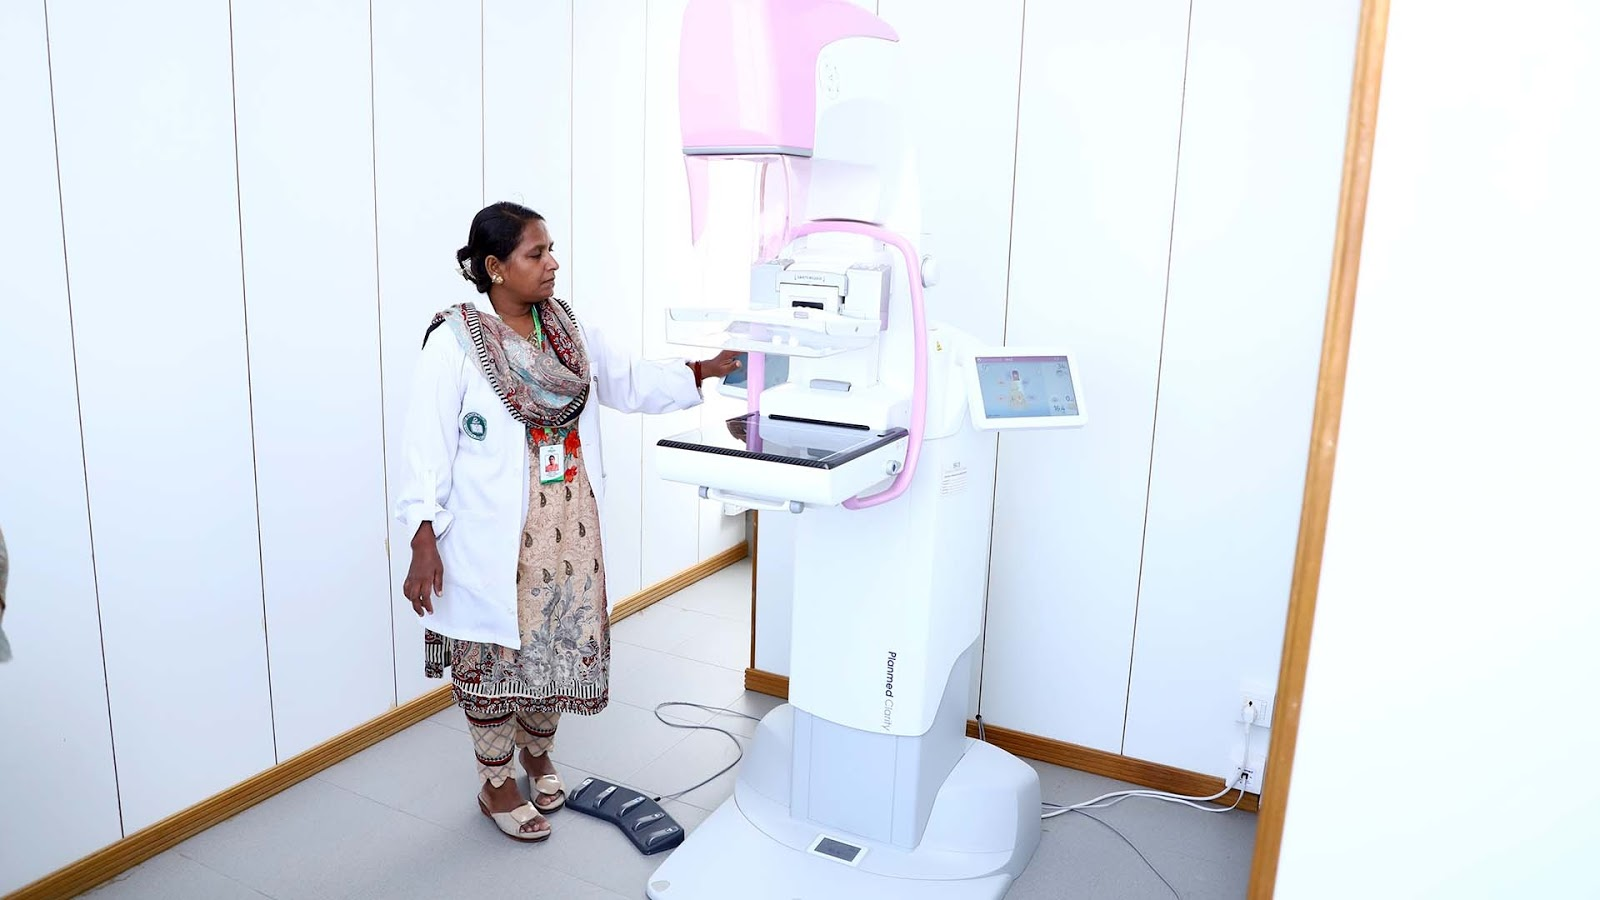 Introduction of Modern Medical Equipment by the Patients' Aid Foundation (PAF) at JPMC